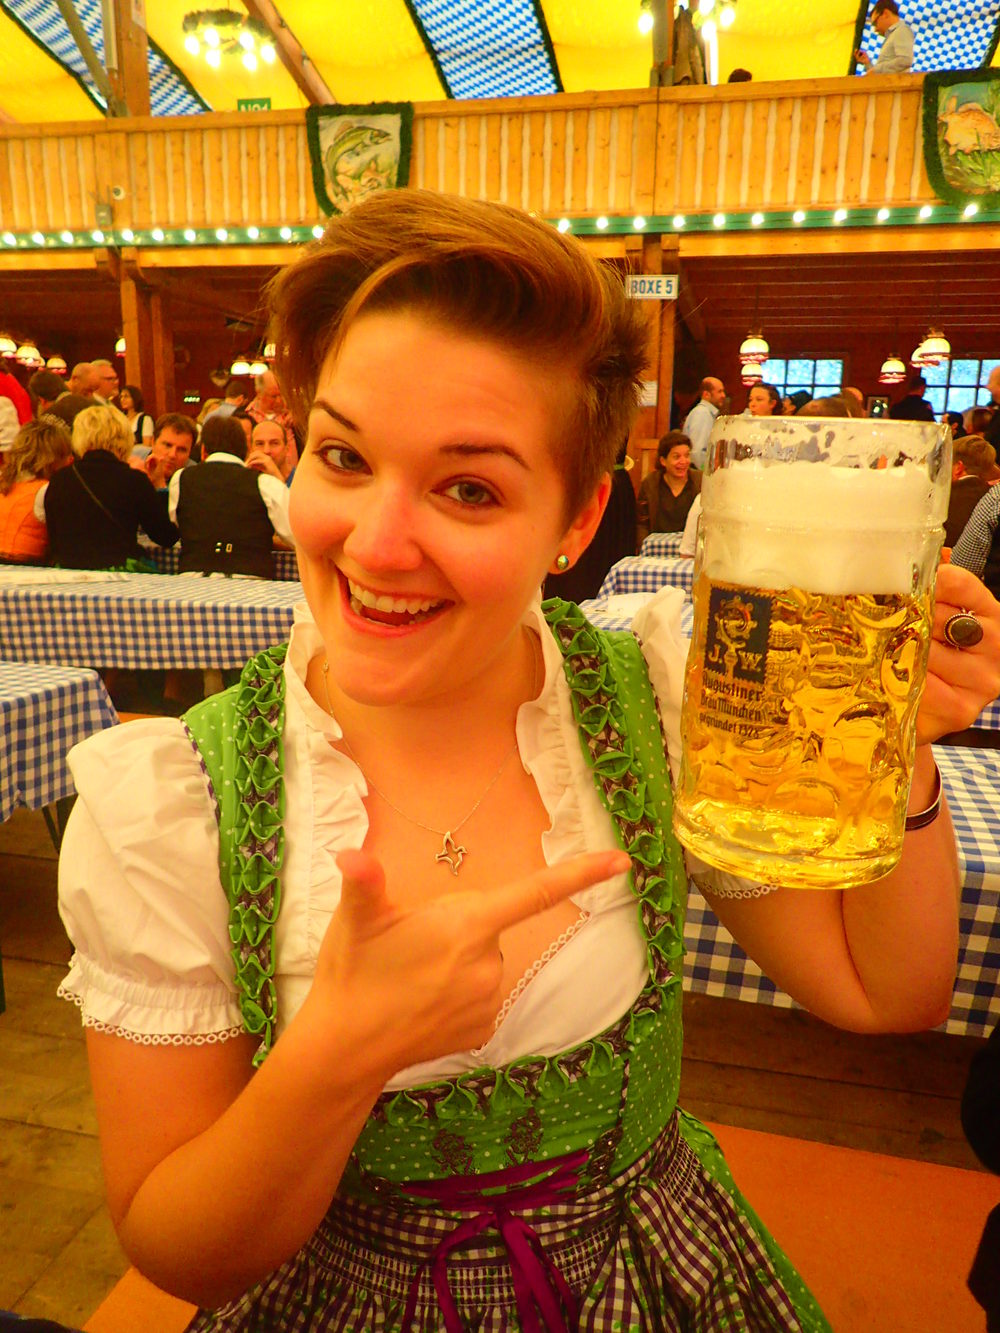 Oktoberfest in Germany was never on my bucket list, but I couldn't pass up the opportunity when it came!